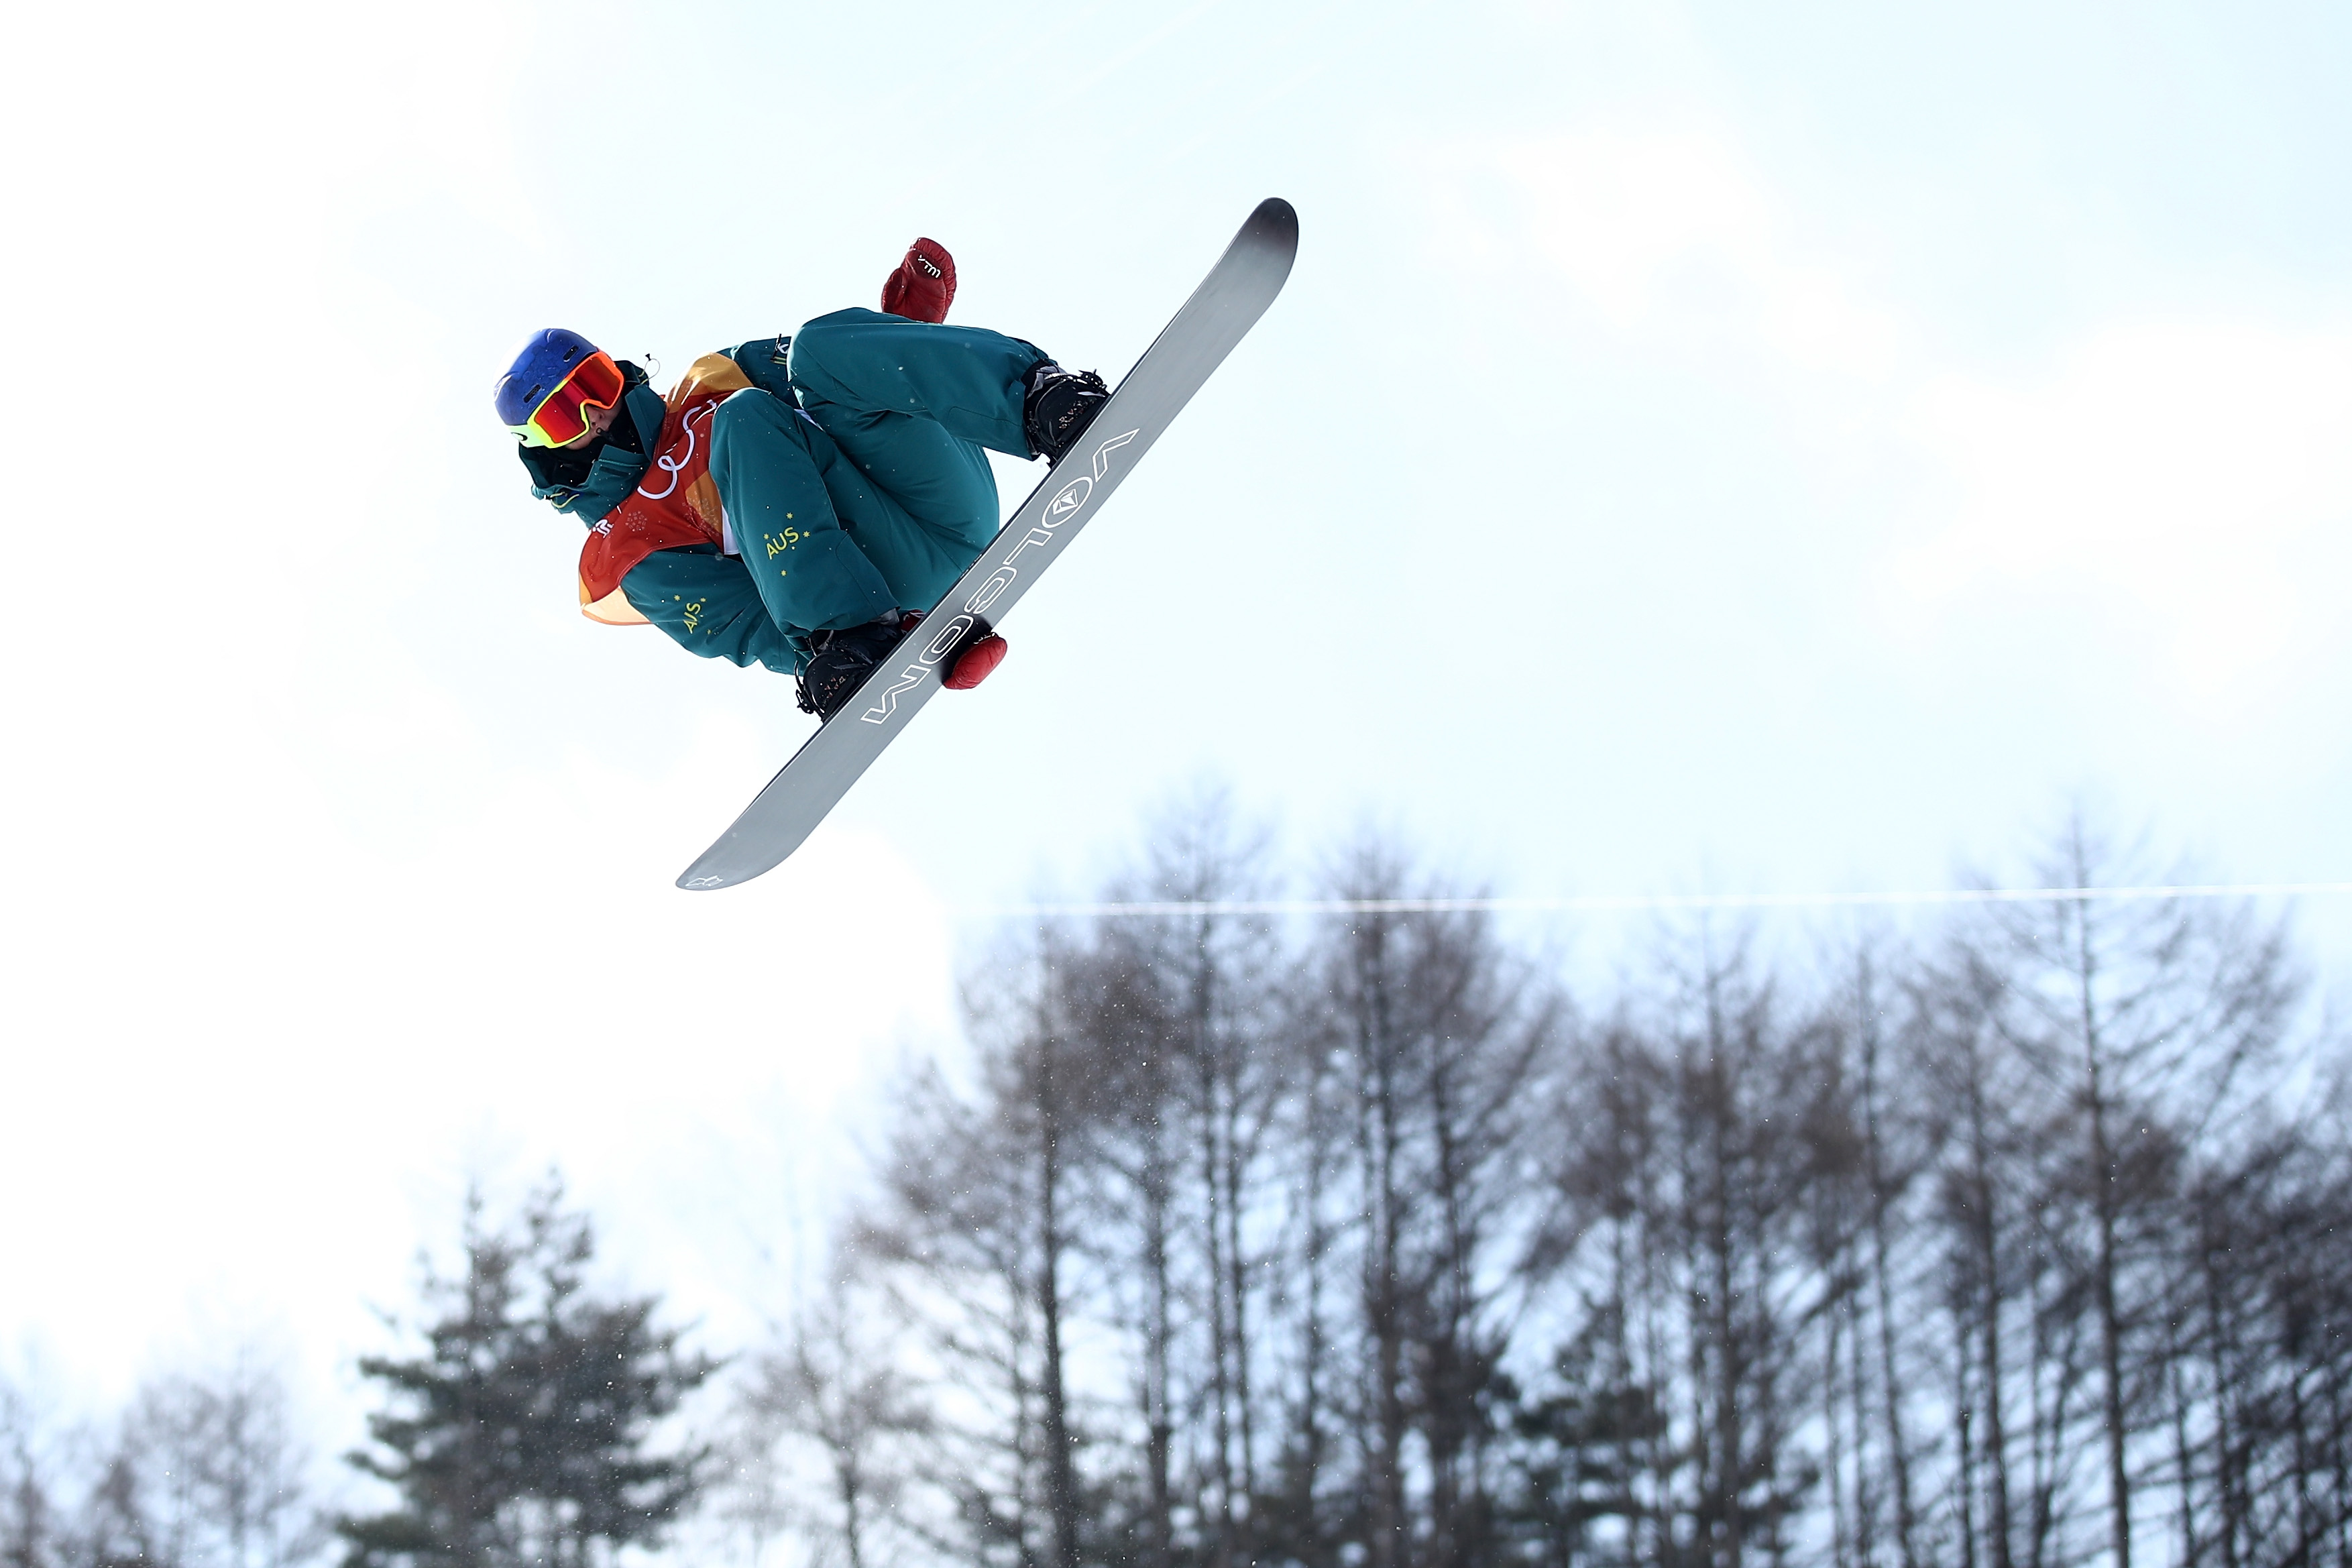 Scotty James of Australia competes during the Snowboard Men's Halfpipe Qualification on day four of the PyeongChang 2018 Winter Olympic Games in South Korea. Cameron Spencer—Getty Images